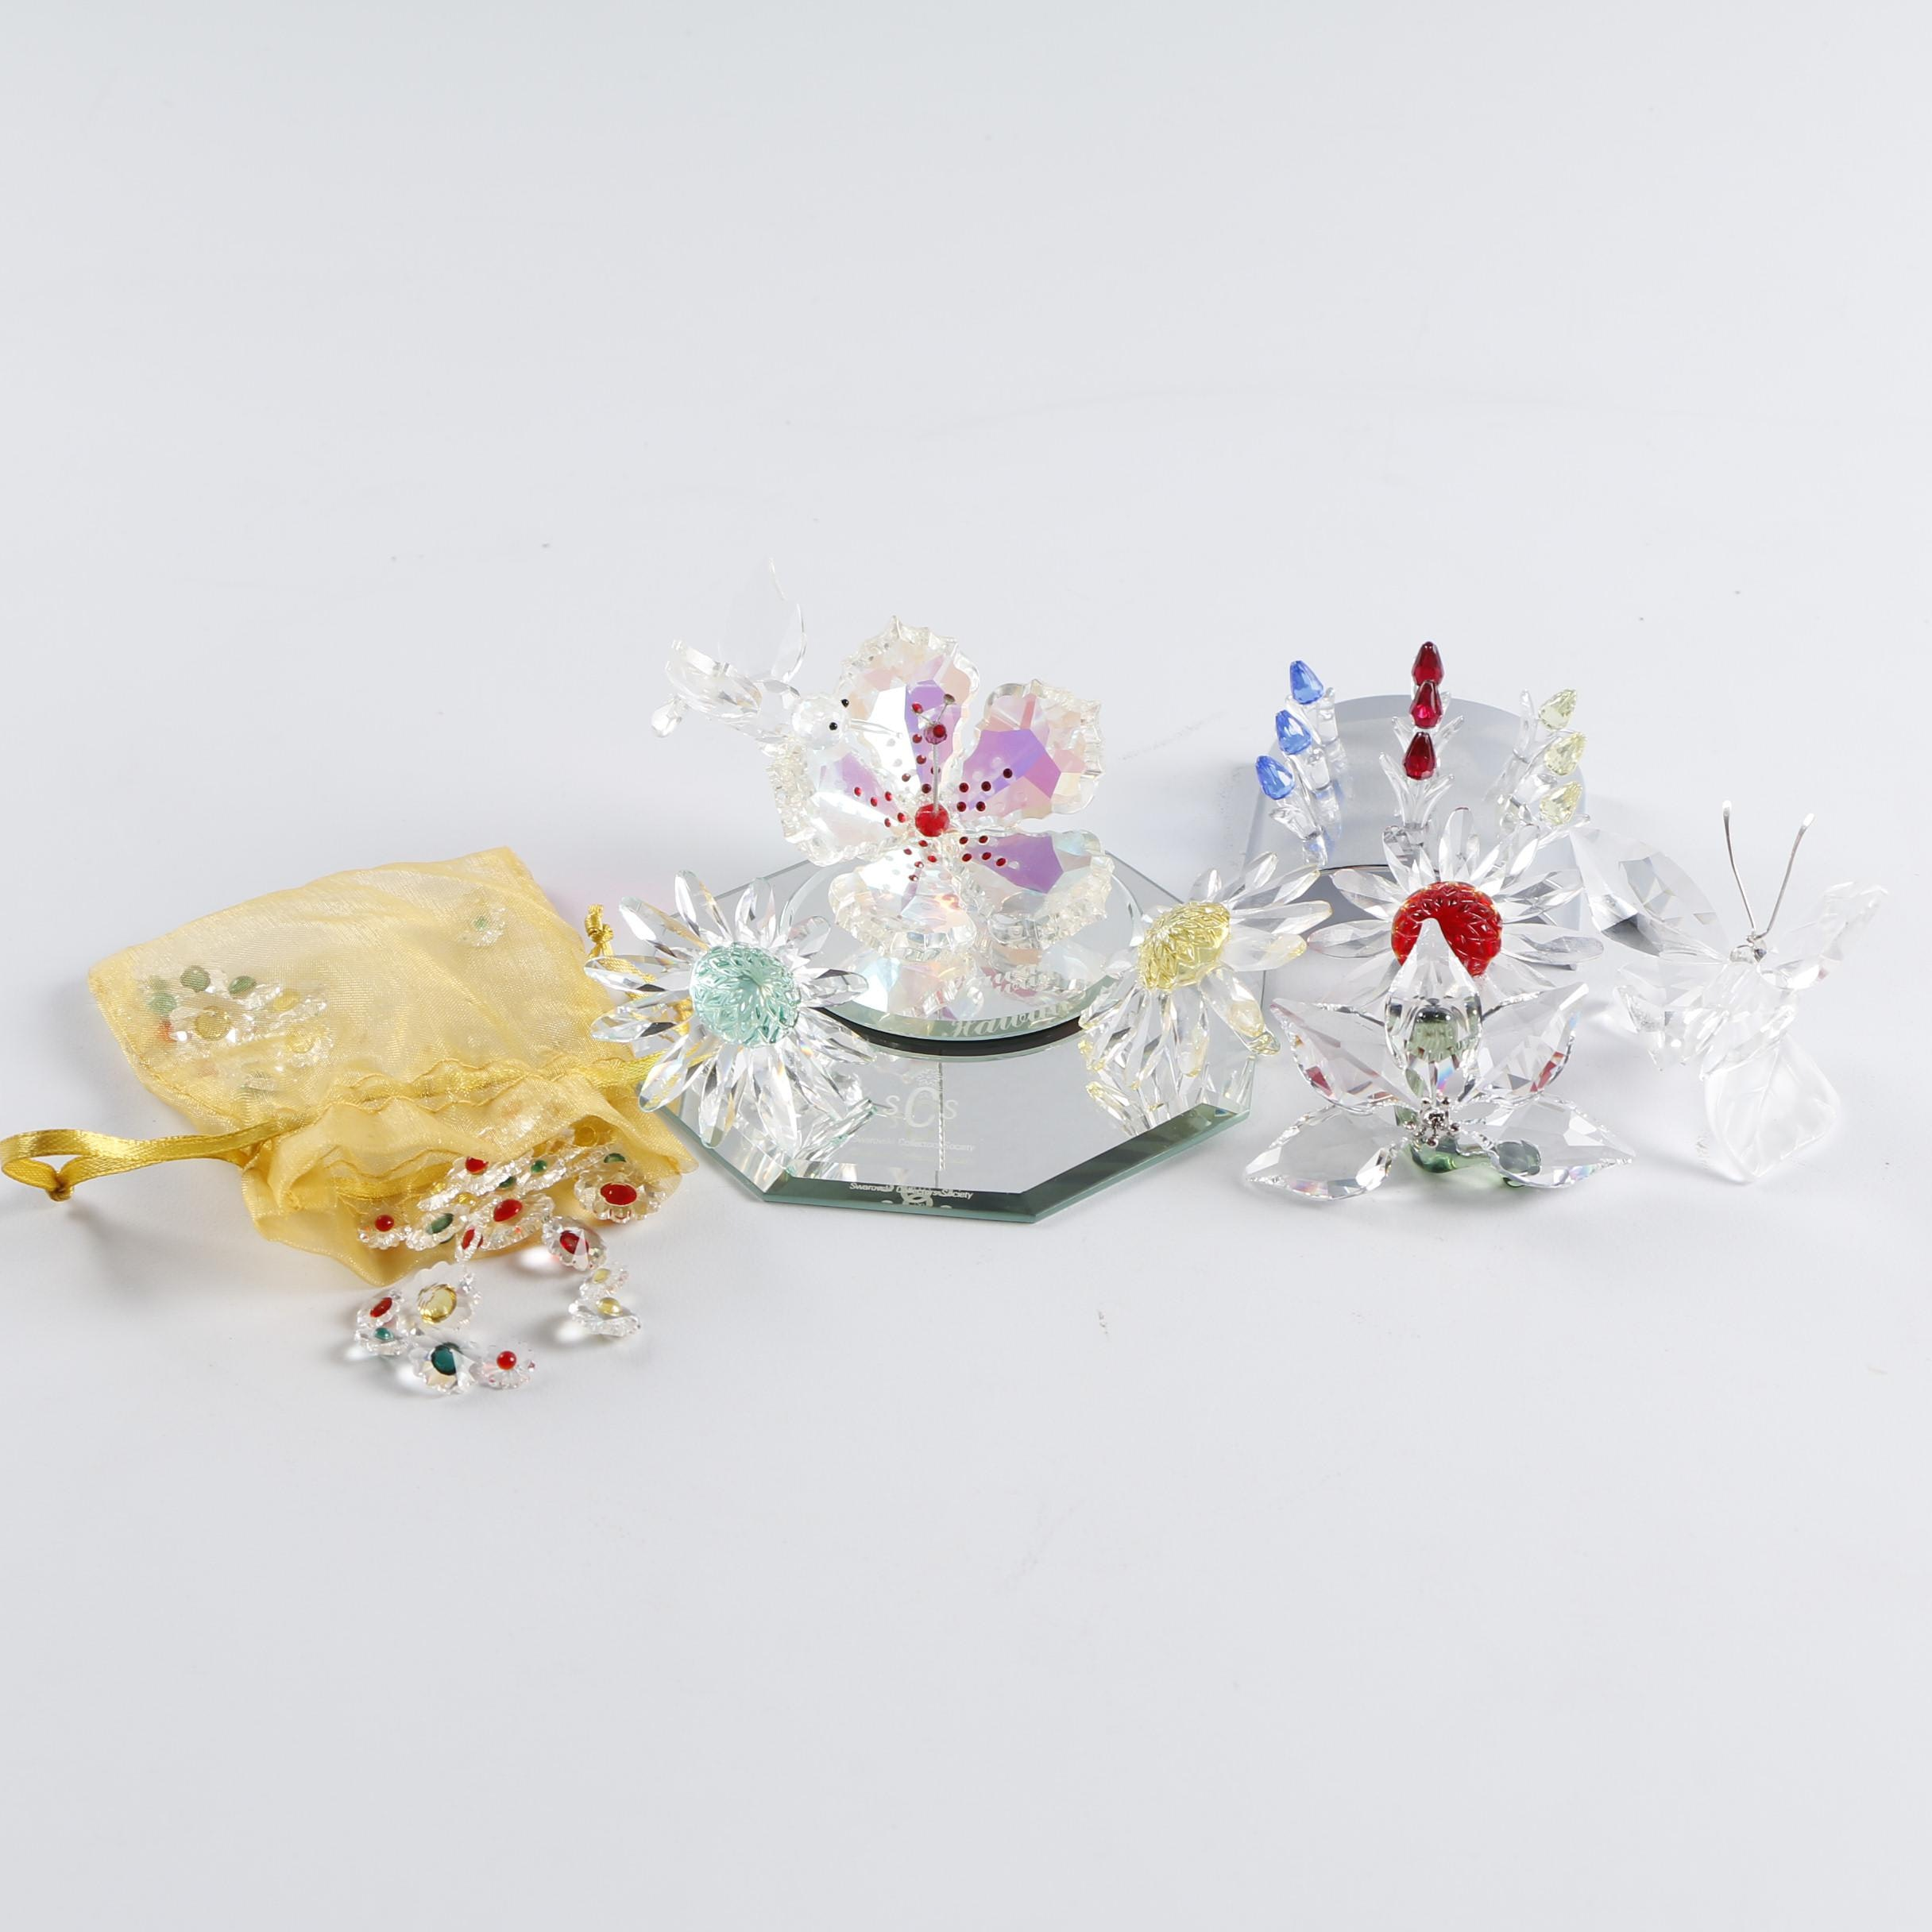 Swarovski Crystal Flowers, Butterfly, and Hummingbird Figurines with Displays